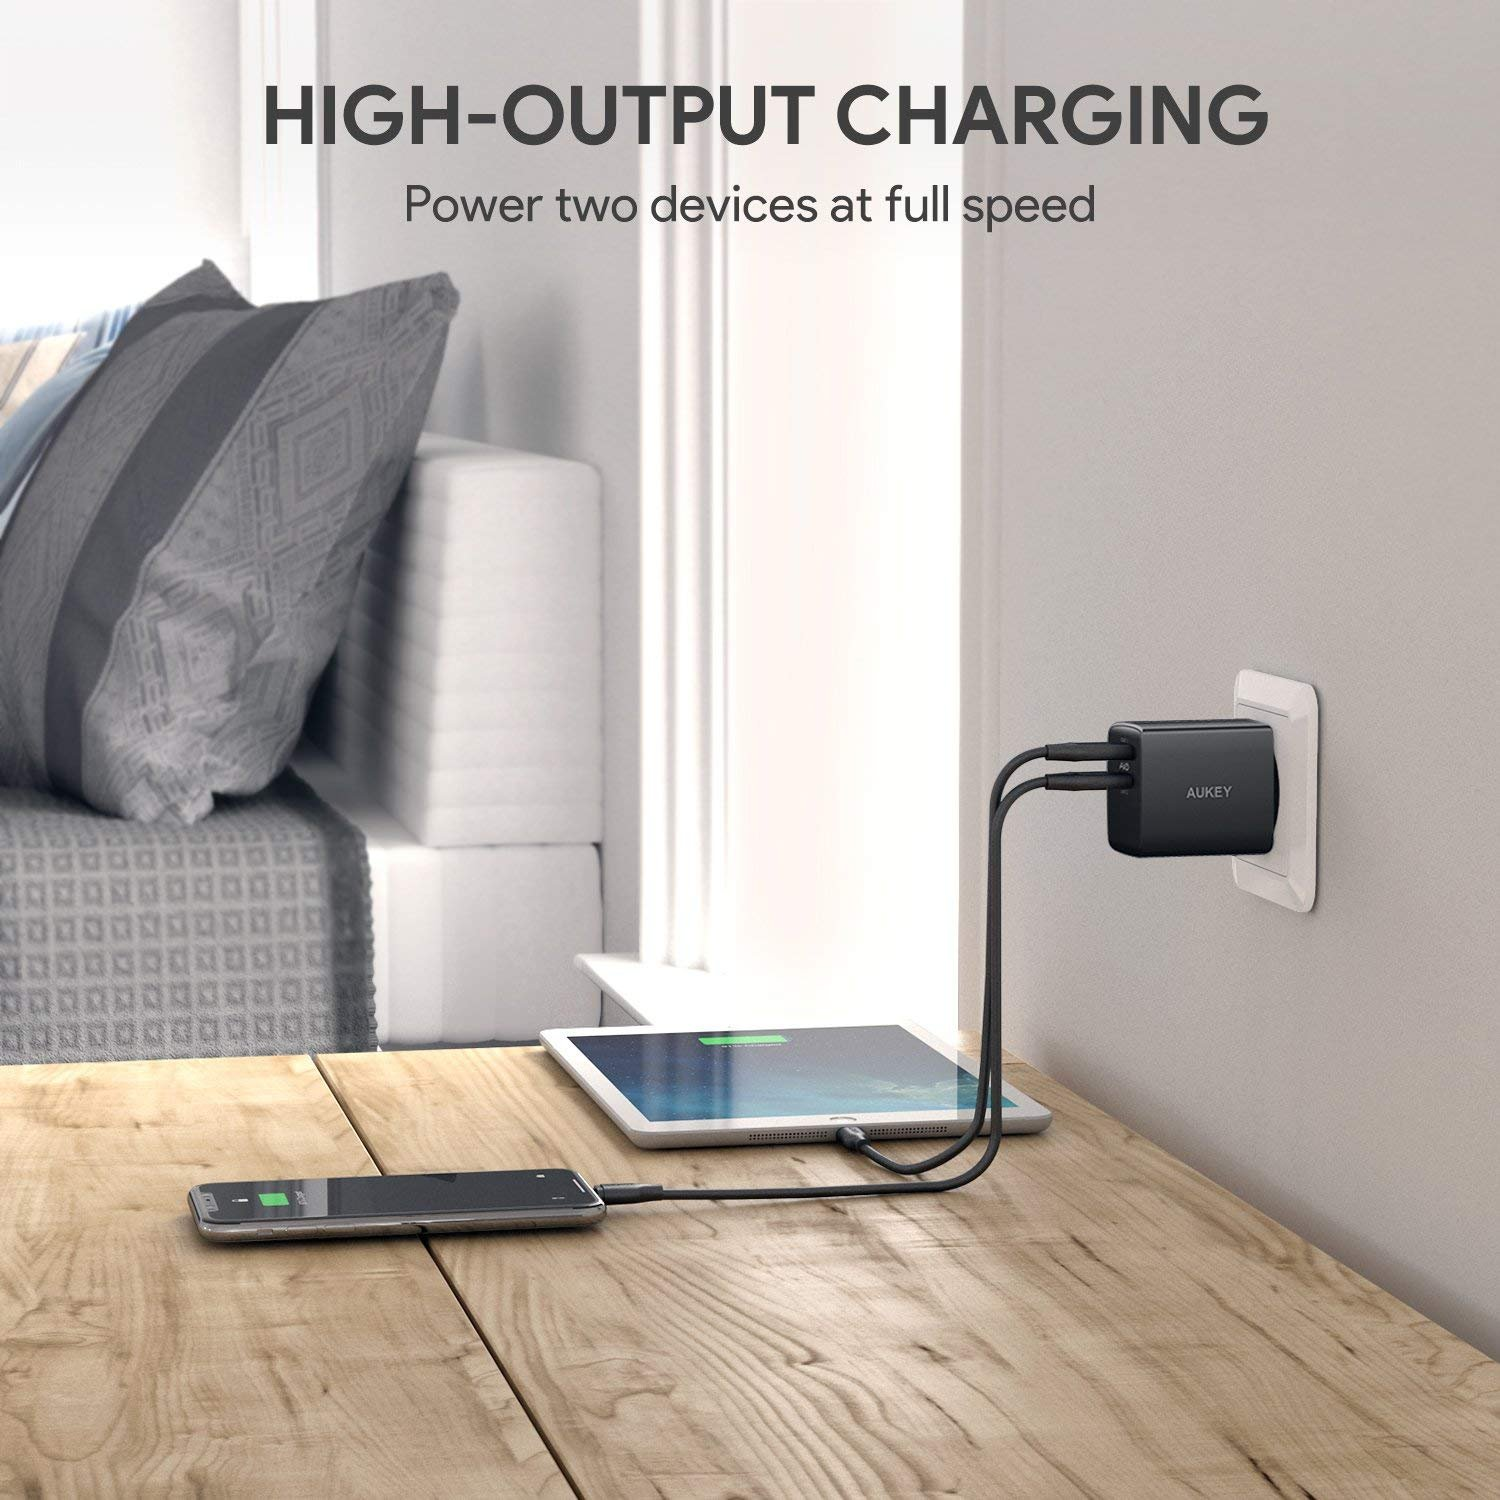 Aukey Usb Ladegert 24w 2 Port Ladeadapter Mit Aipower Technologie Pa U42 Amp Wall Charger Fr Iphone Xs